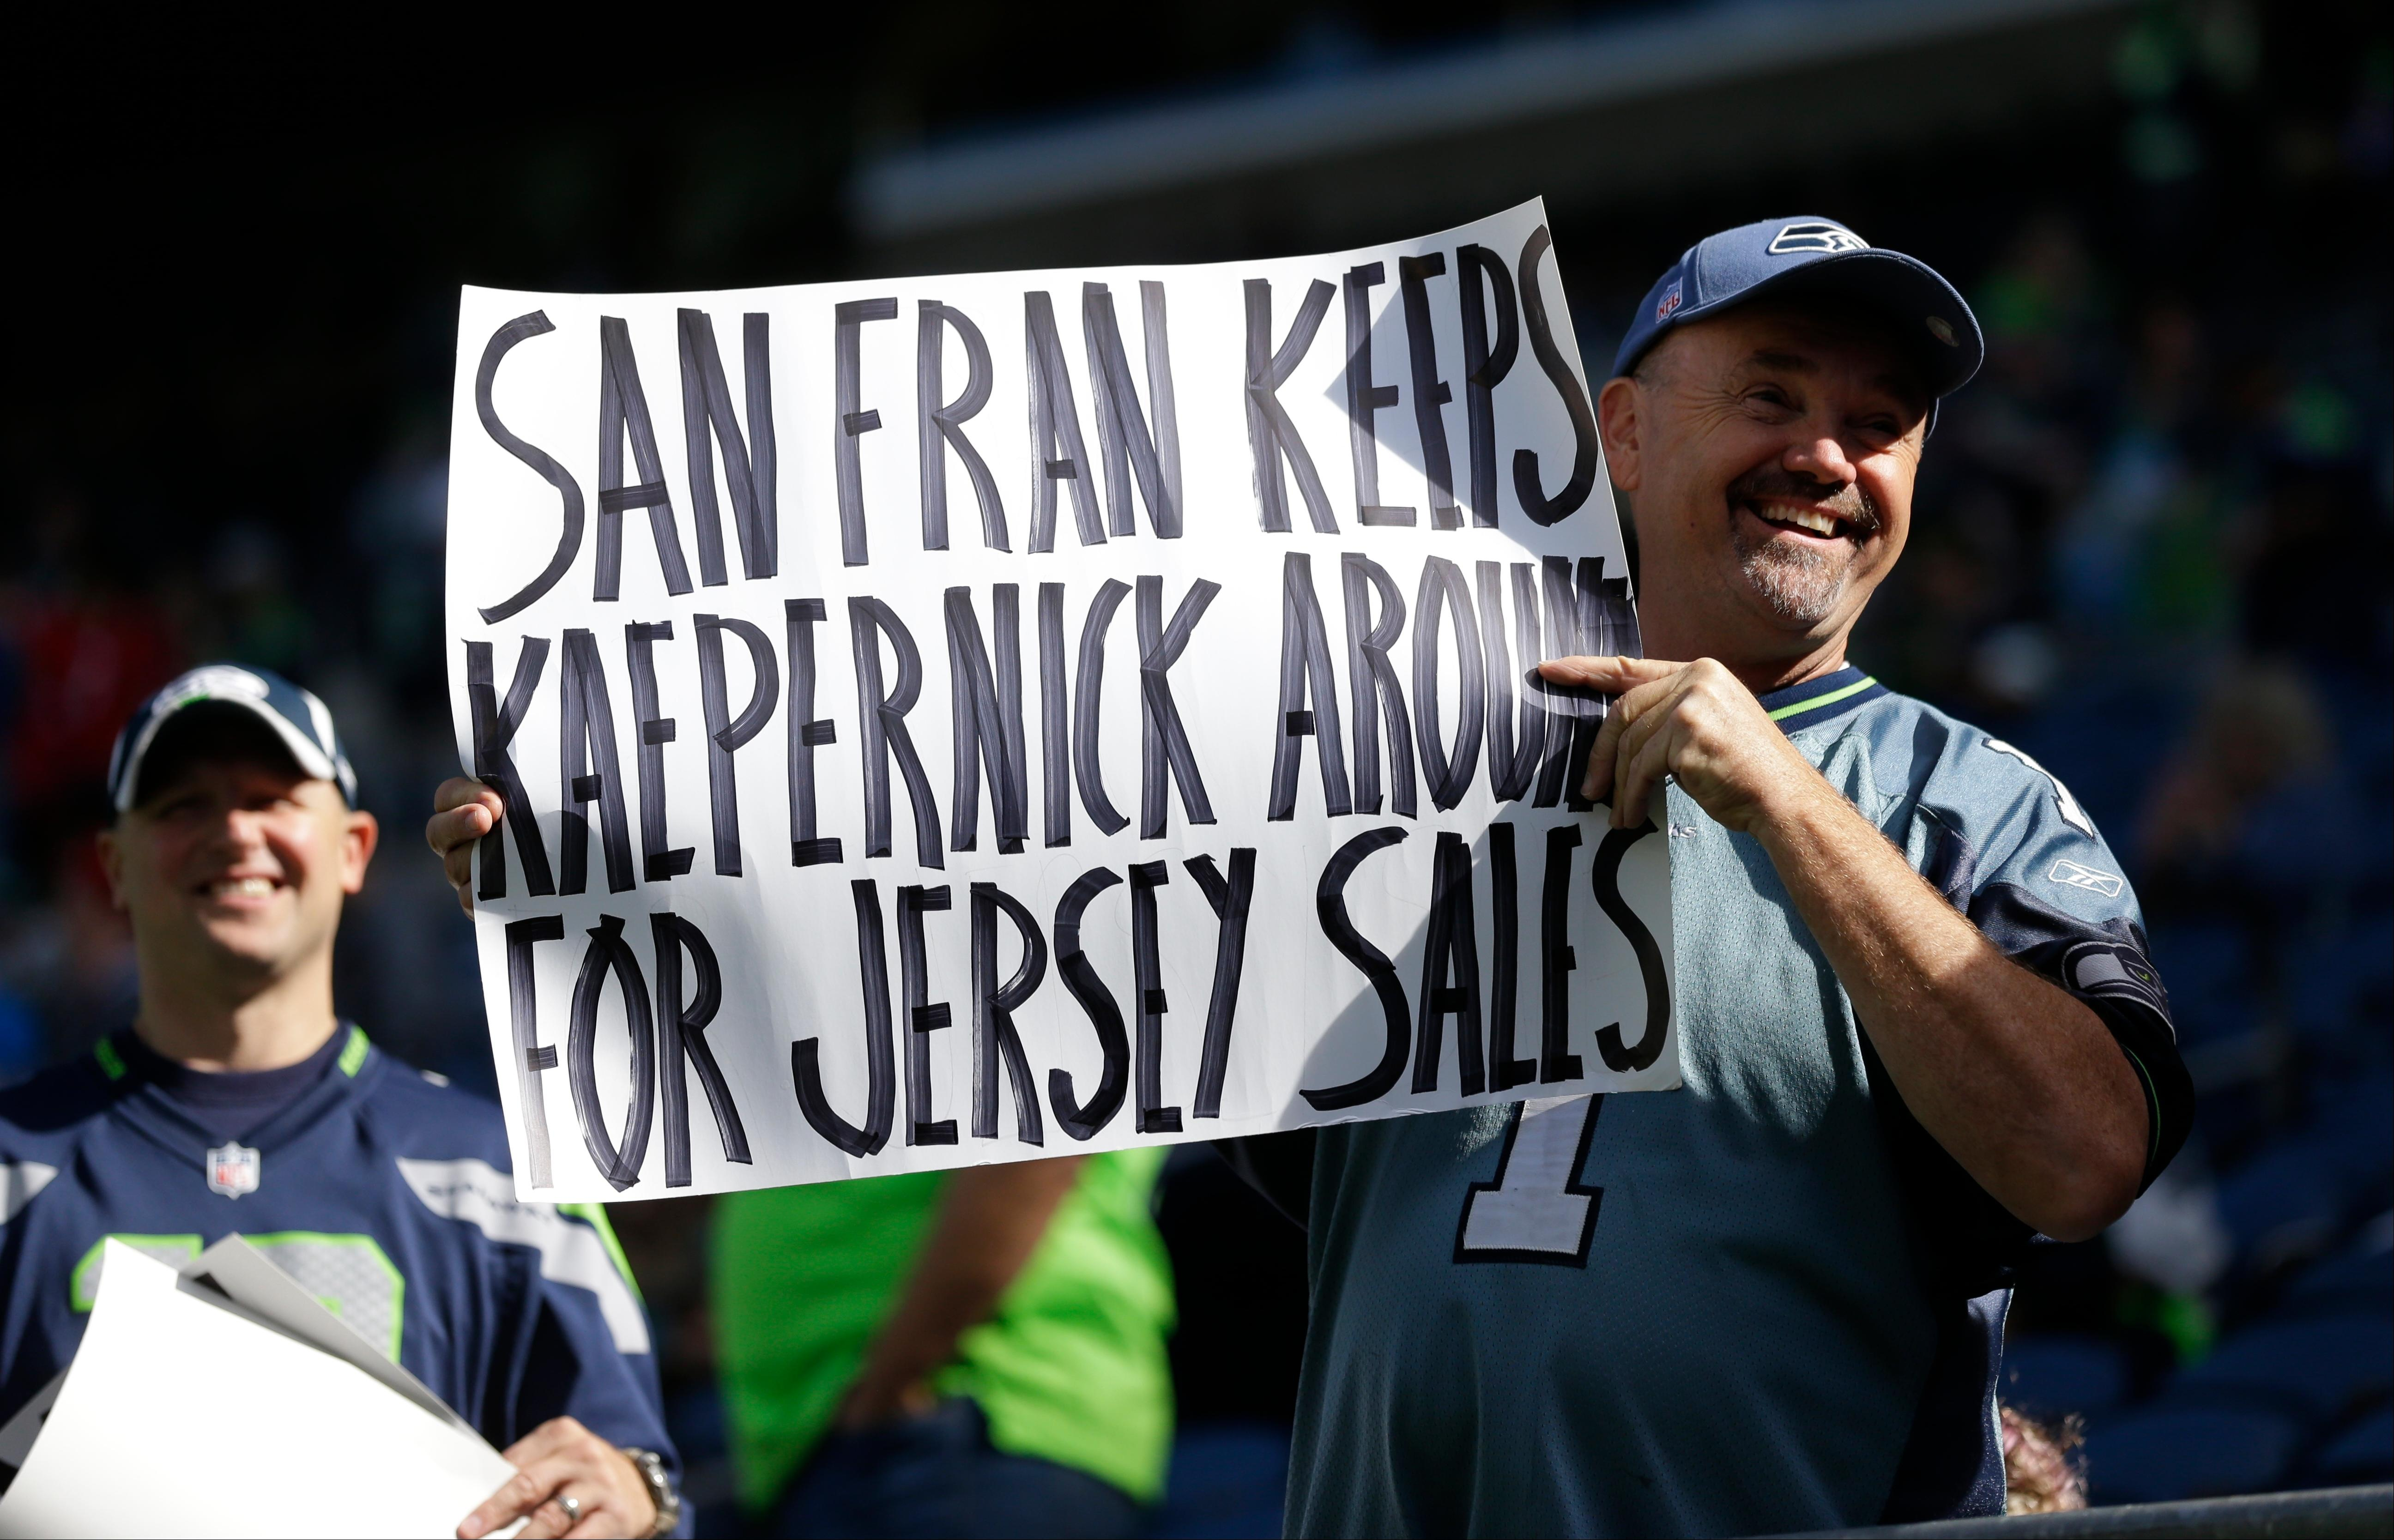 FILE - In this Sept. 25, 2016, file photo, a Seattle Seahawks fan holds up a sign about San Francisco 49ers' Colin Kaepernick before an NFL football game in Seattle. The once-rising star and Super Bowl quarterback has been unemployed since March, when he opted out of his contract and became a free agent who could sign with any team. Just weeks away from the regular season, he has become a symbol of the clash of celebrity, sports and social issues as more people, including players, fans, politicians, team owners and pundits, invoke his name to debate thorny issues of patriotism and race. (AP Photo/Ted S. Warren, File)